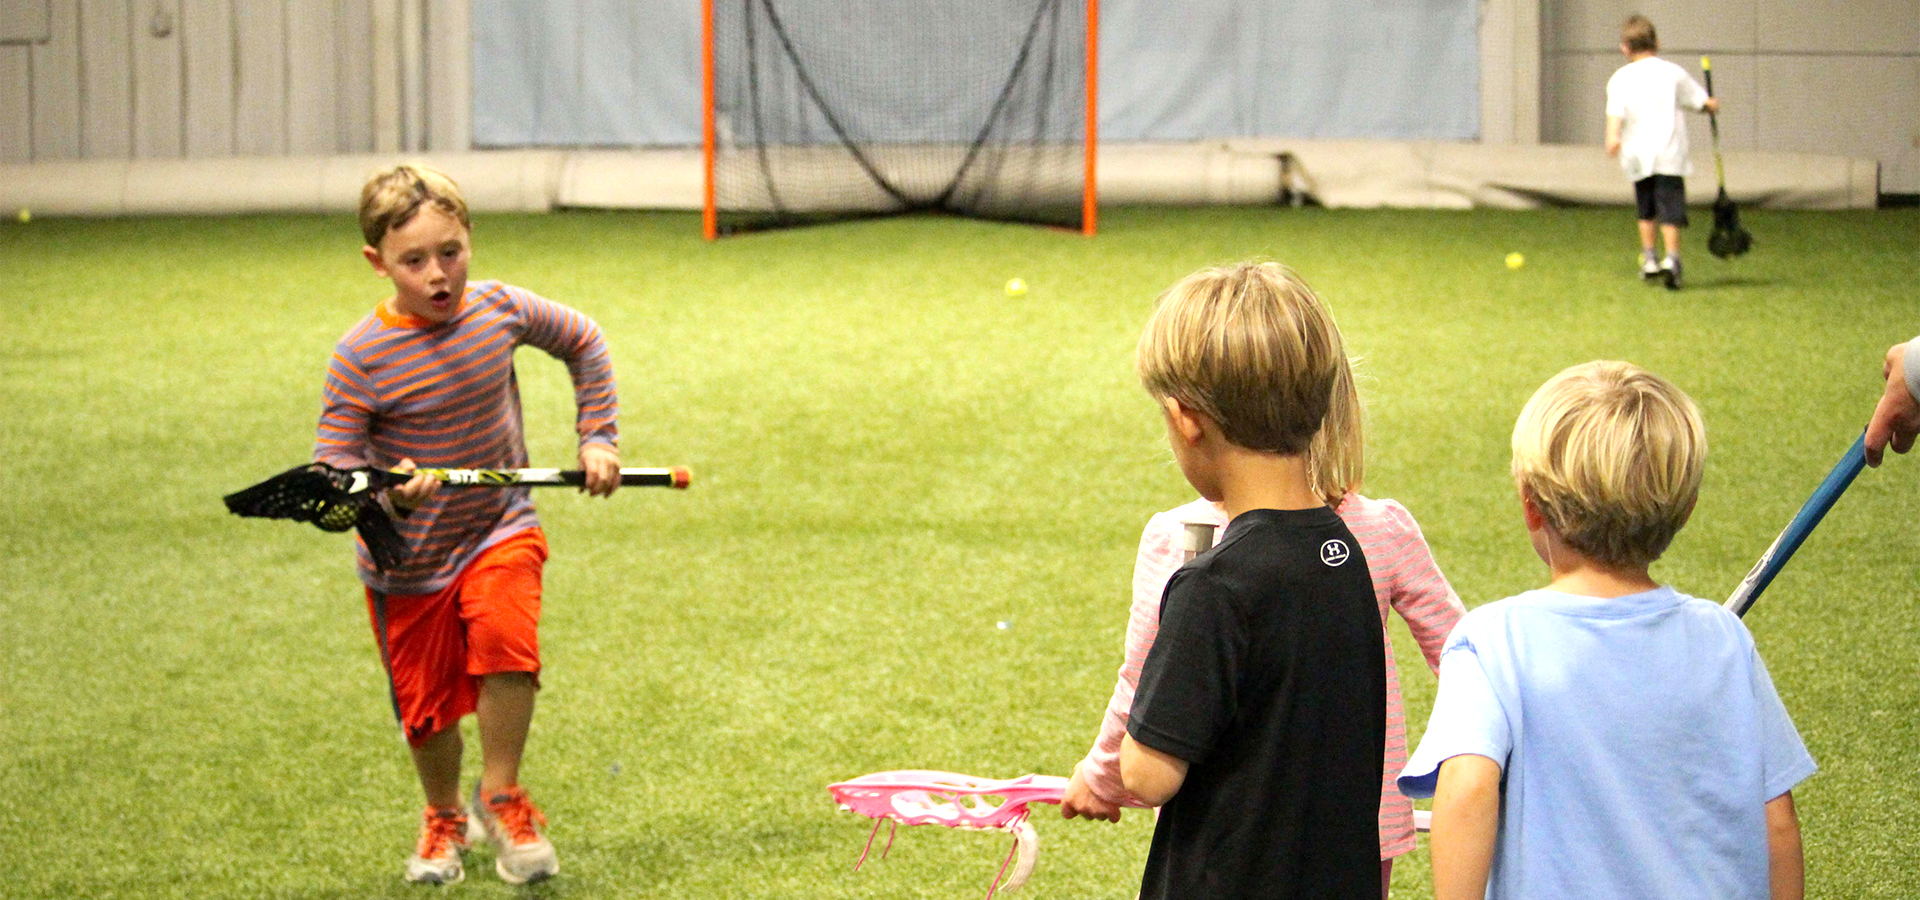 learn 2 lax - questions about lacrosse?